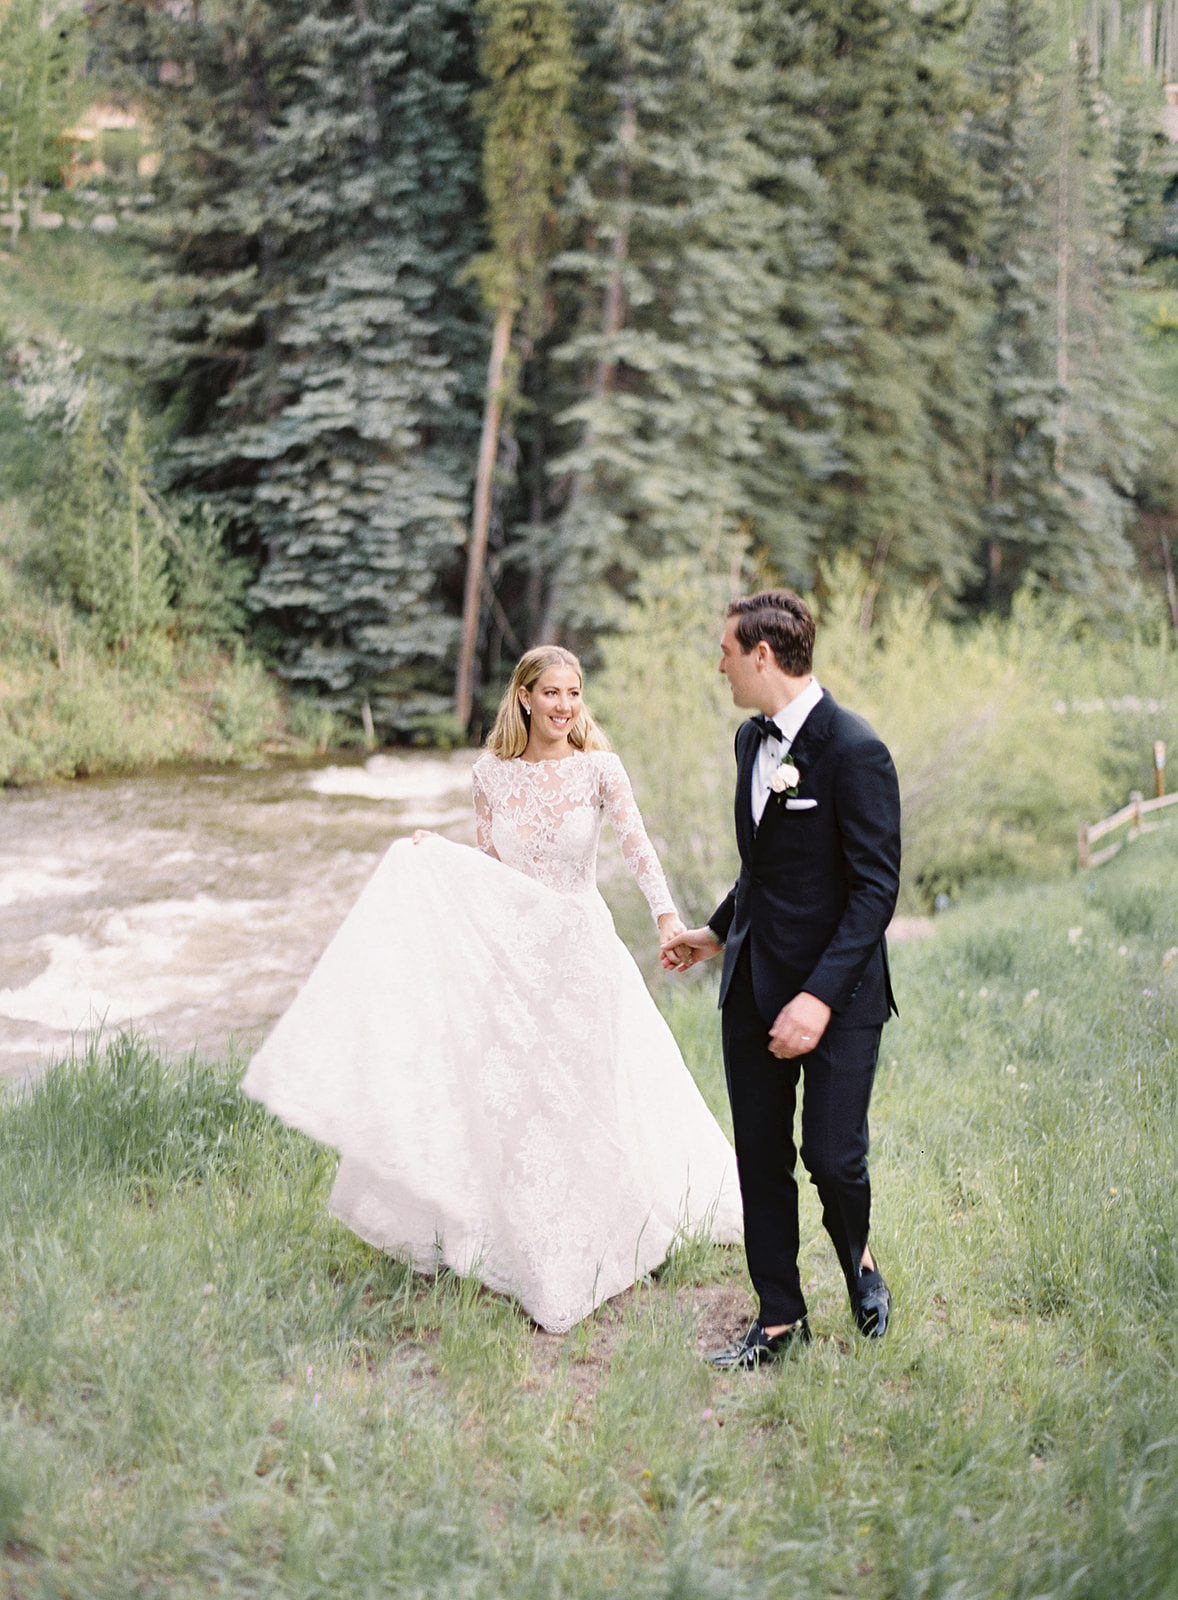 bride groom walk through woods wedding attire